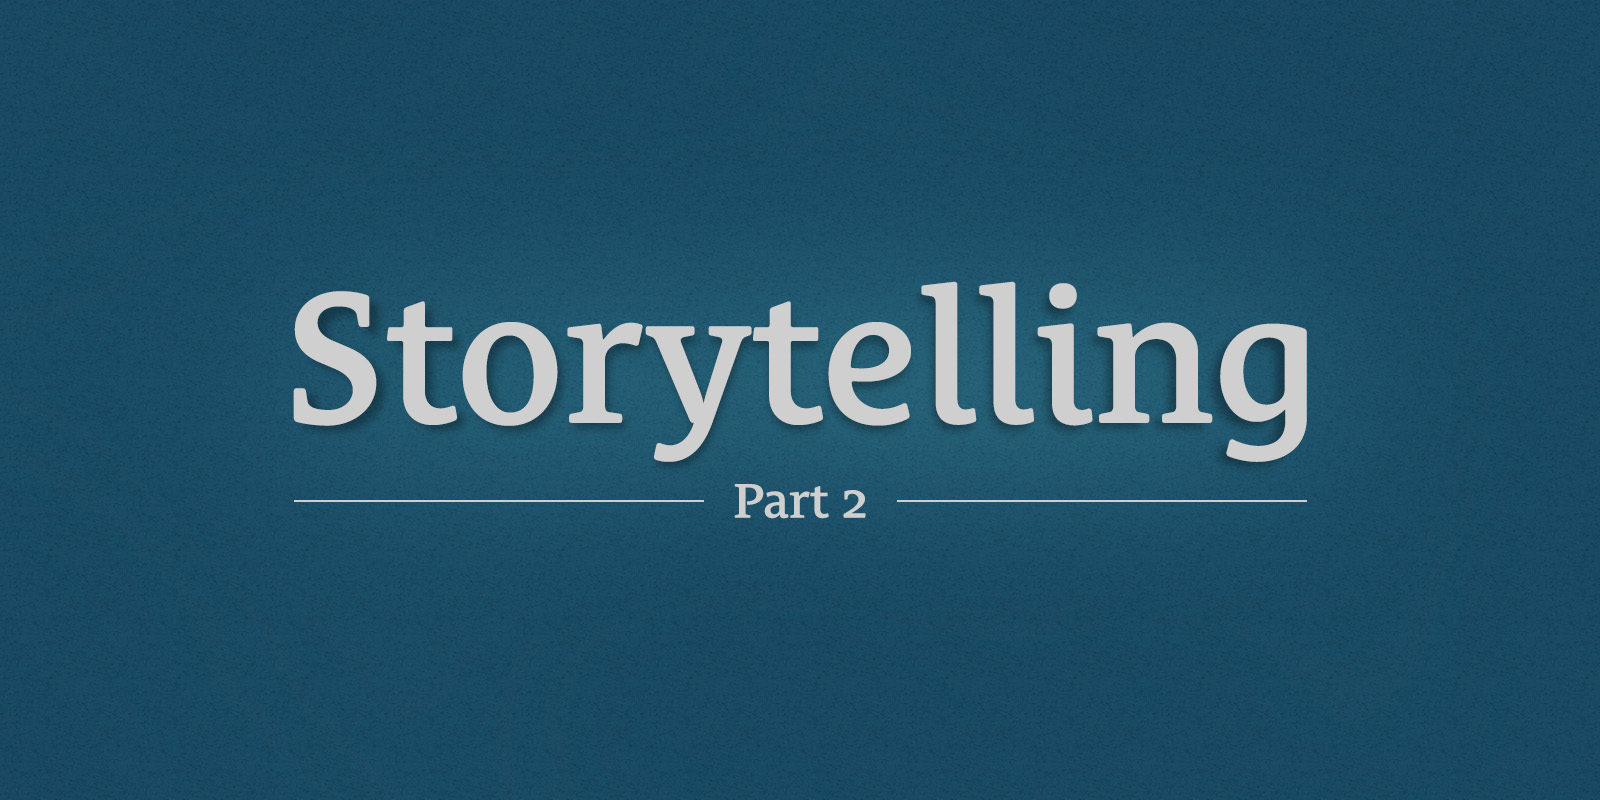 Storytelling, Part 2: Crafting a Narrative